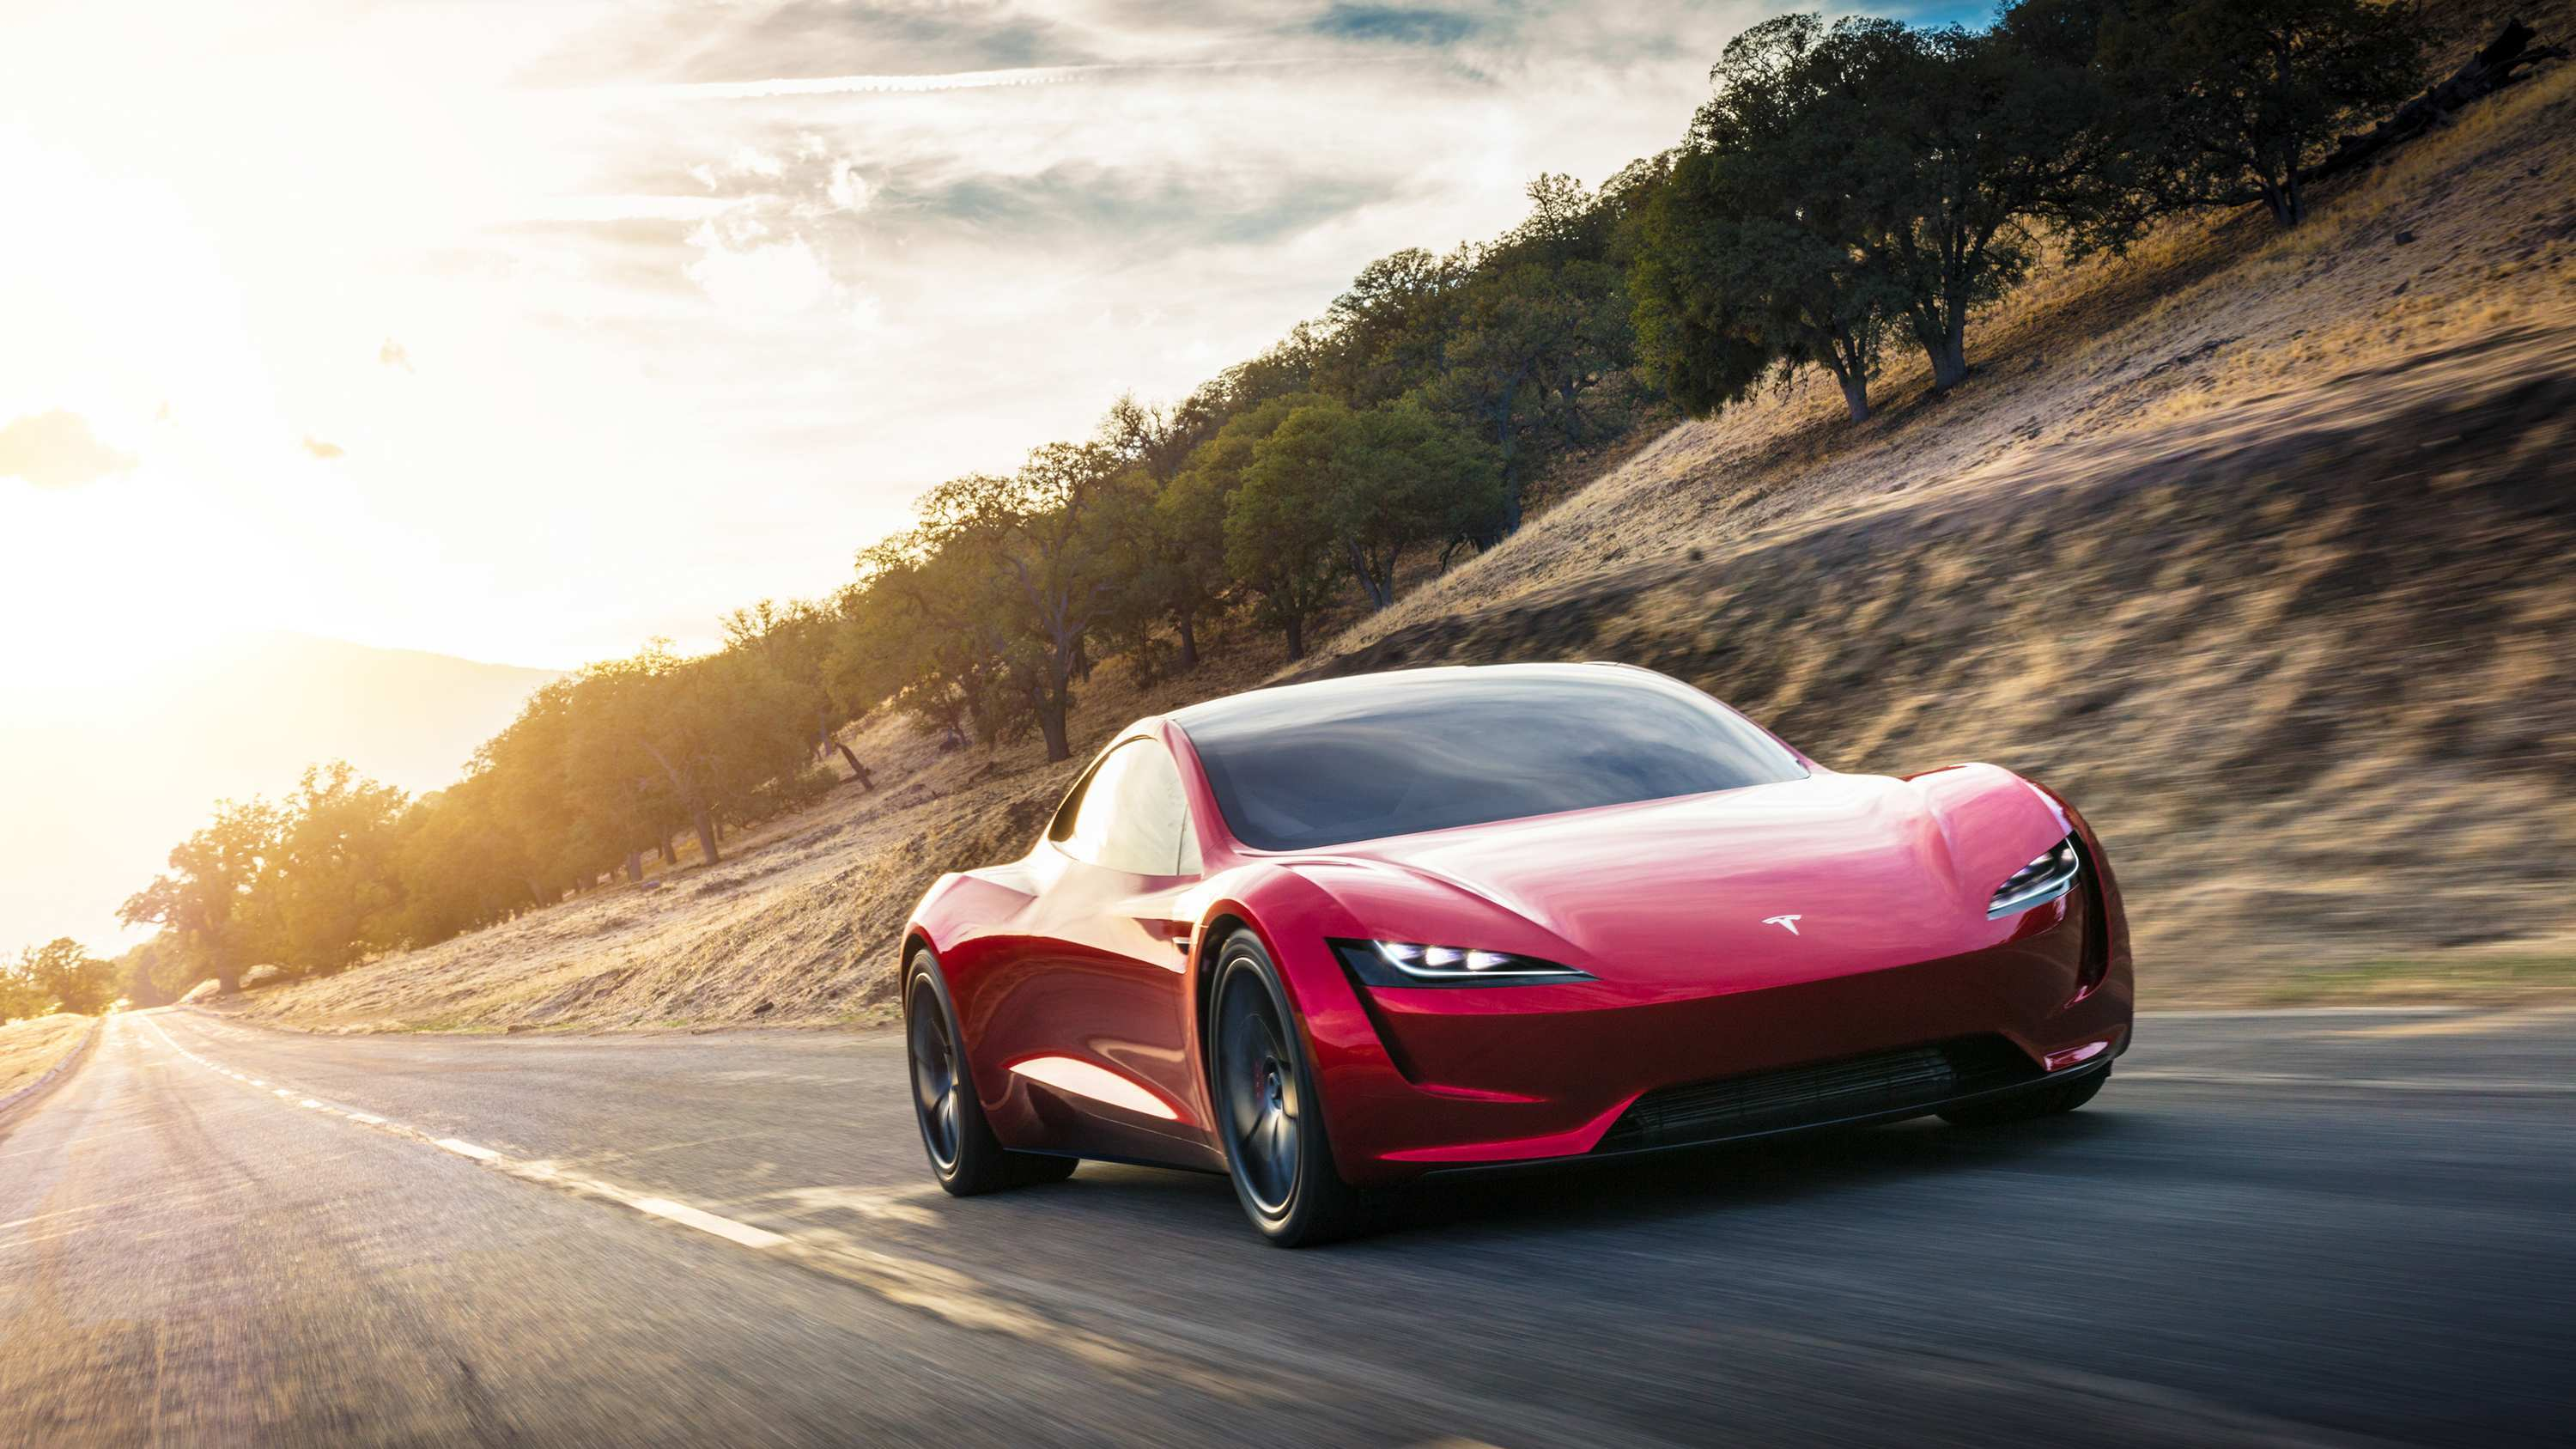 77 Best Review 2019 Tesla Roadster Torque Configurations by 2019 Tesla Roadster Torque